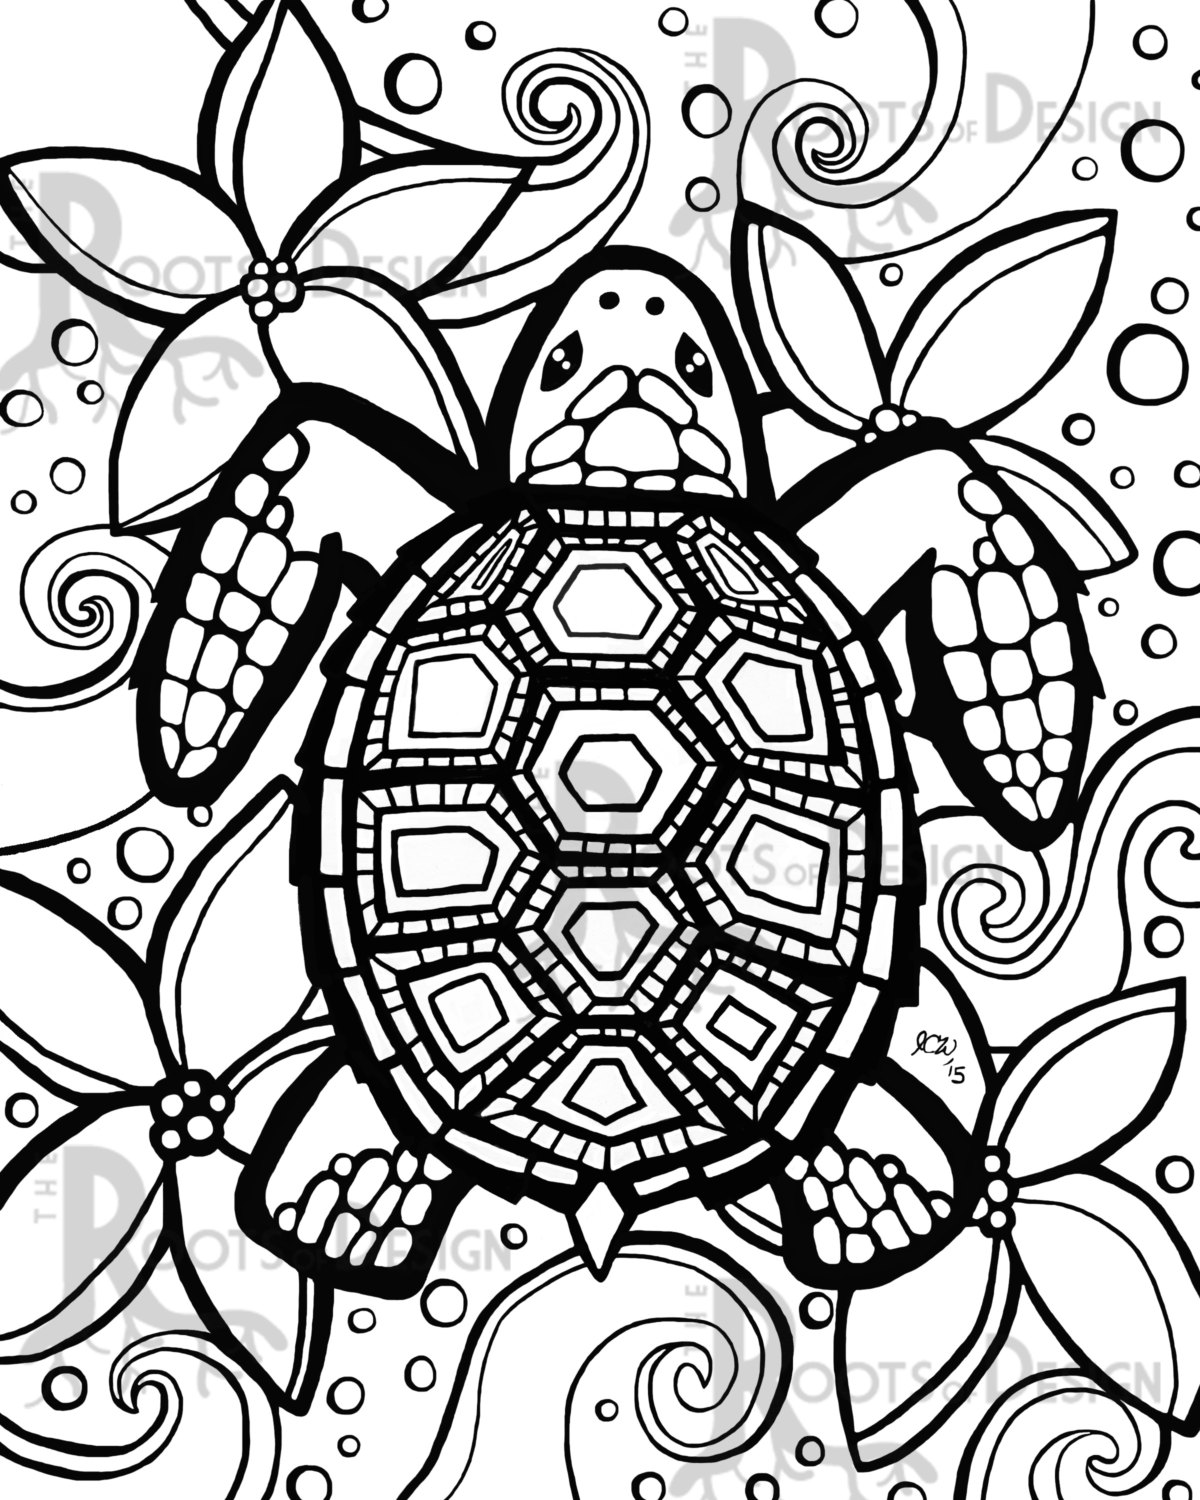 sea turtle coloring pages printable the jurney of sea turtle free coloring page download sea pages printable turtle coloring